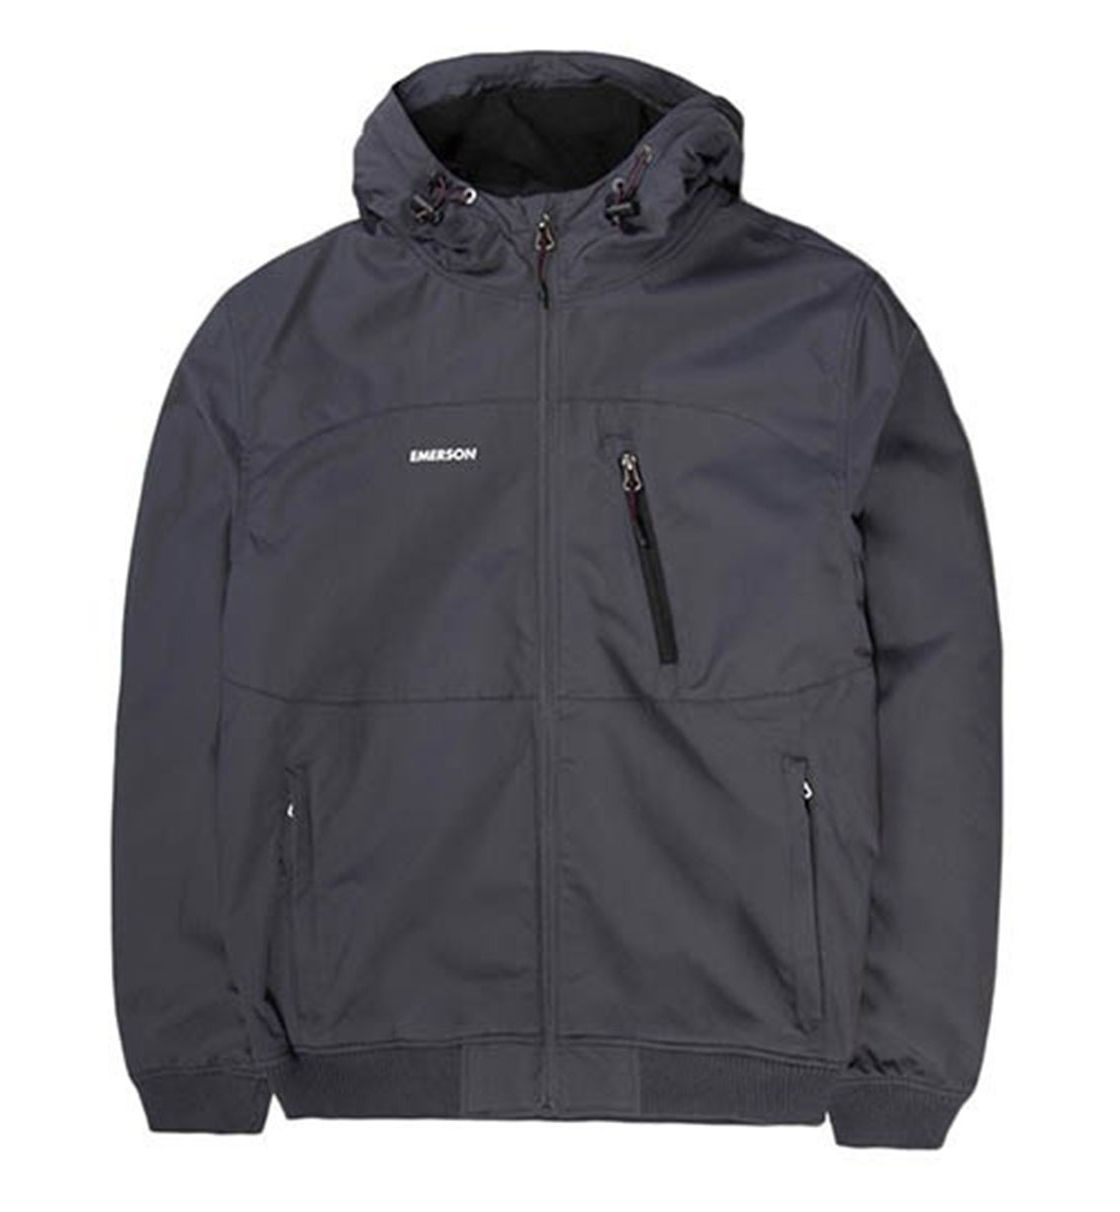 Emerson Fw19 Men'S Ribbed Jacket With Hood